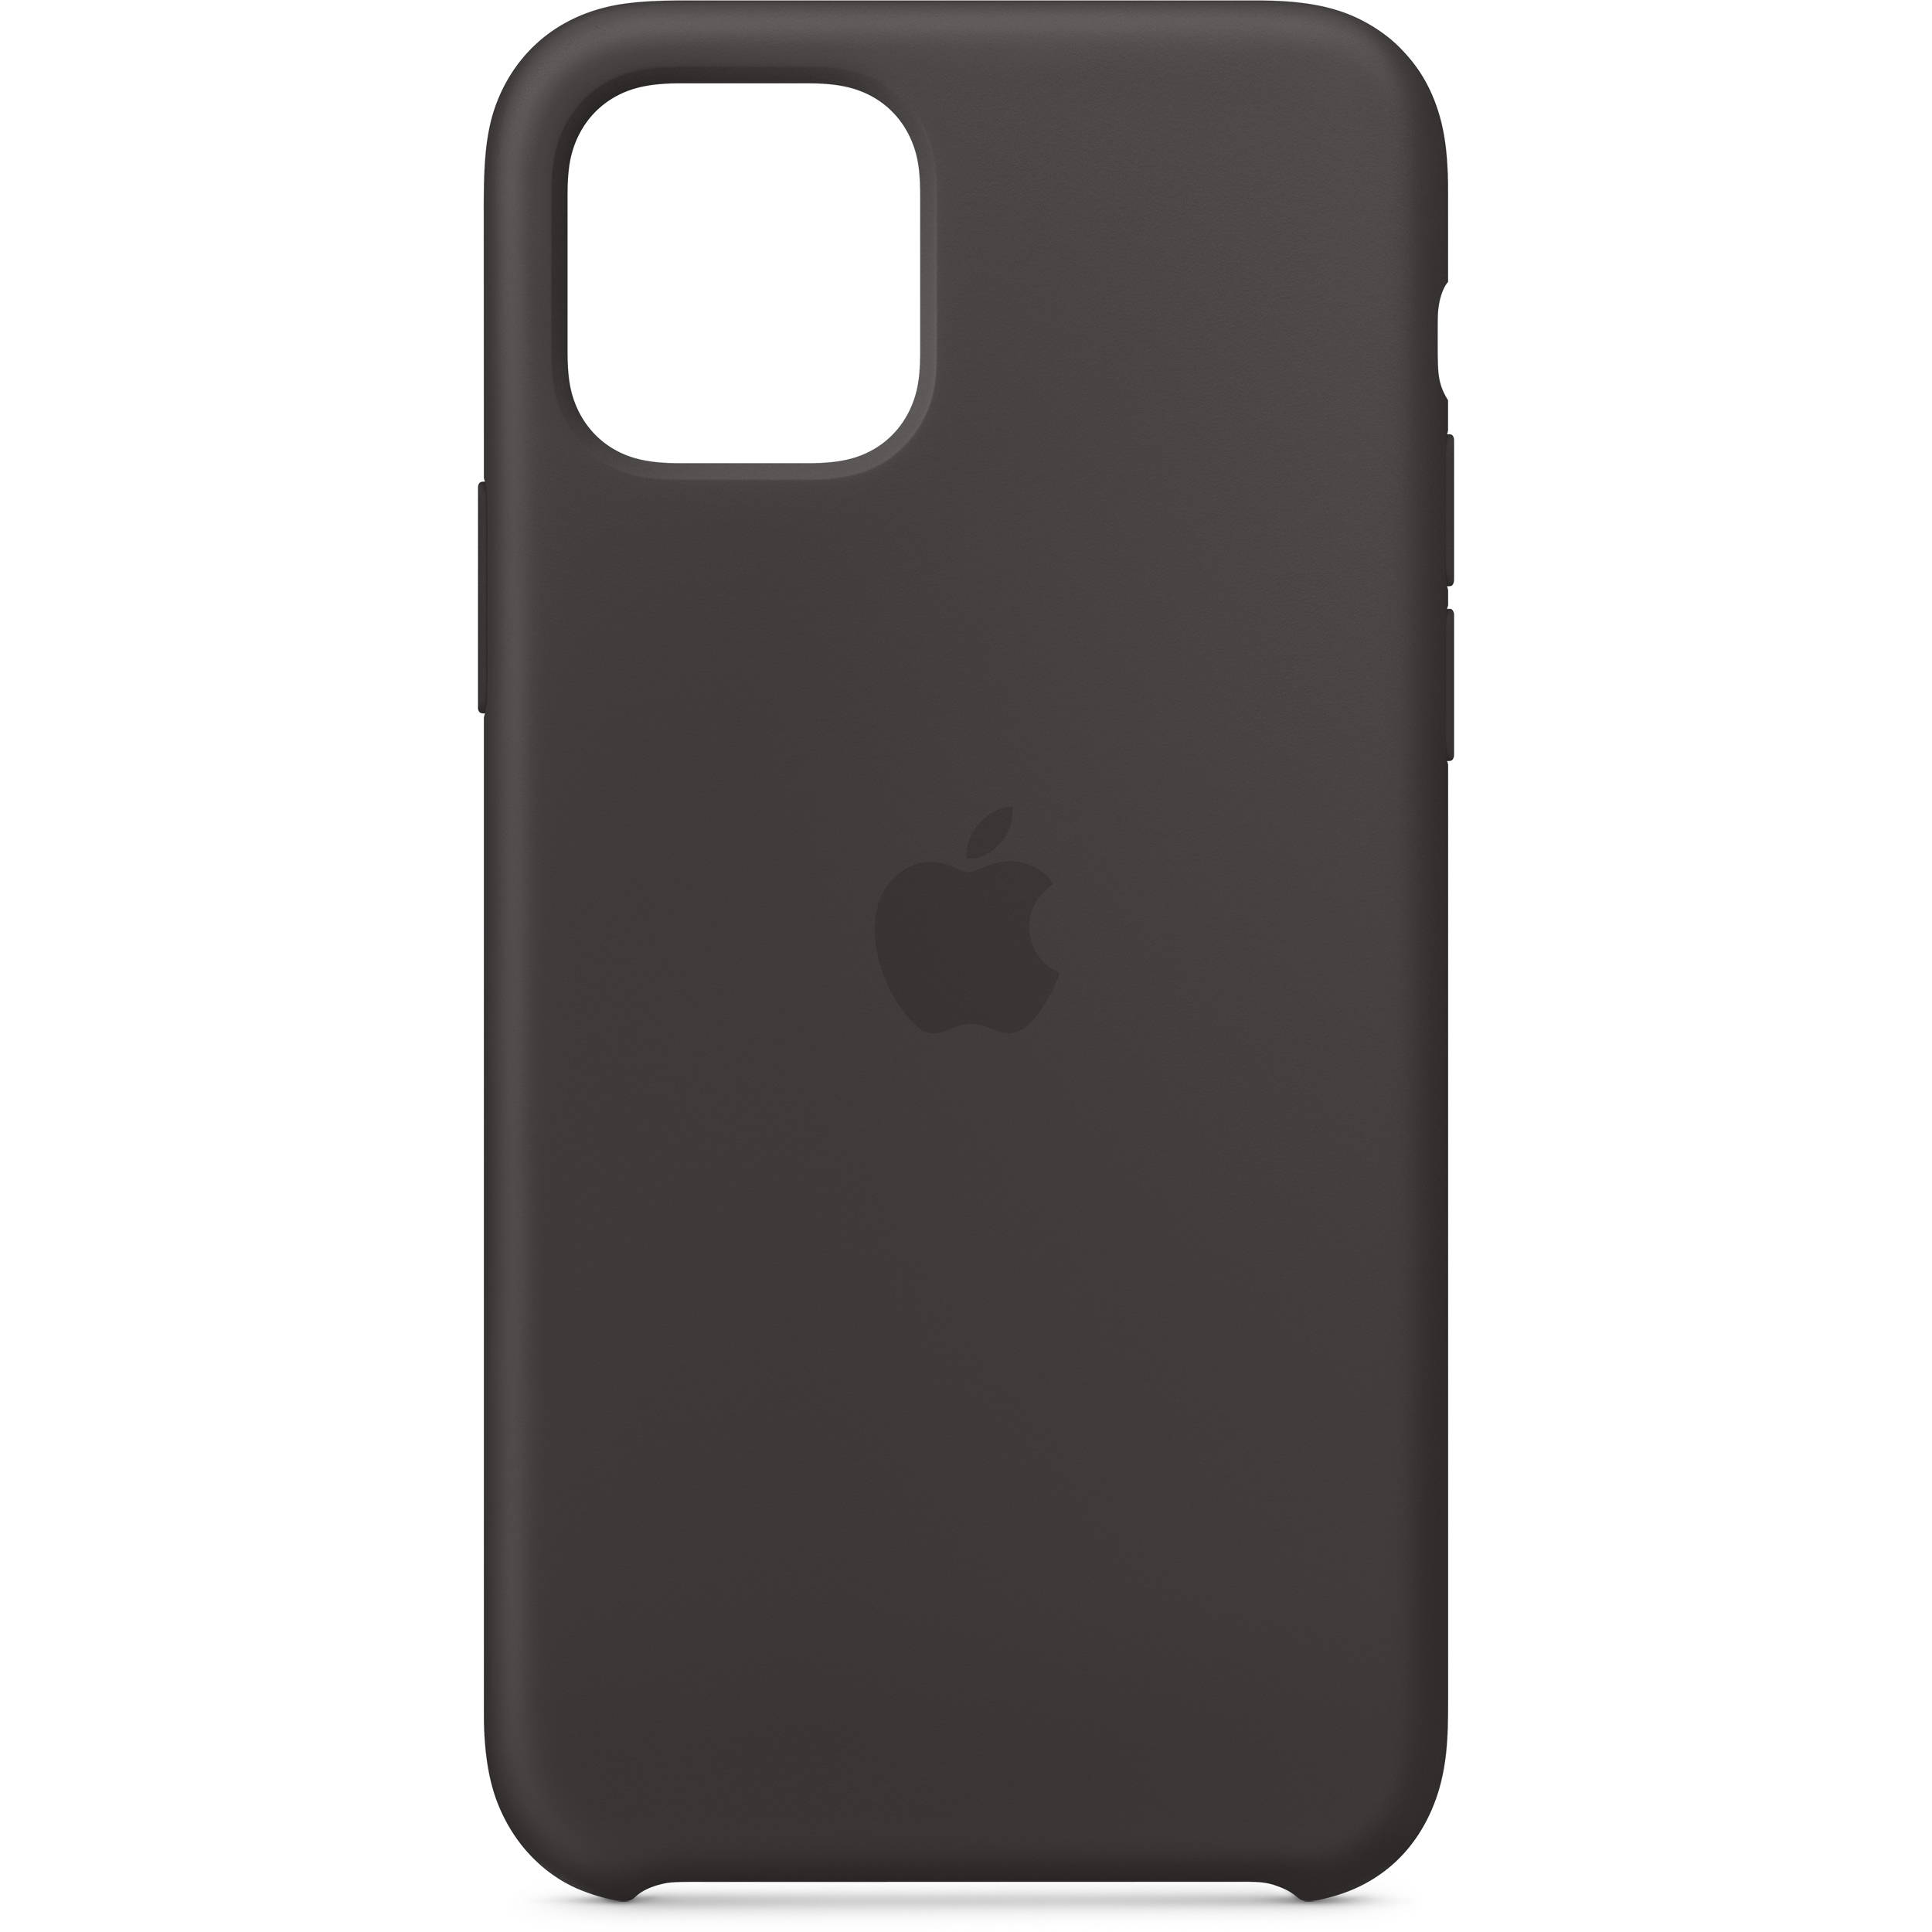 Apple Silicone Case for iPhone 11 Pro (Black)